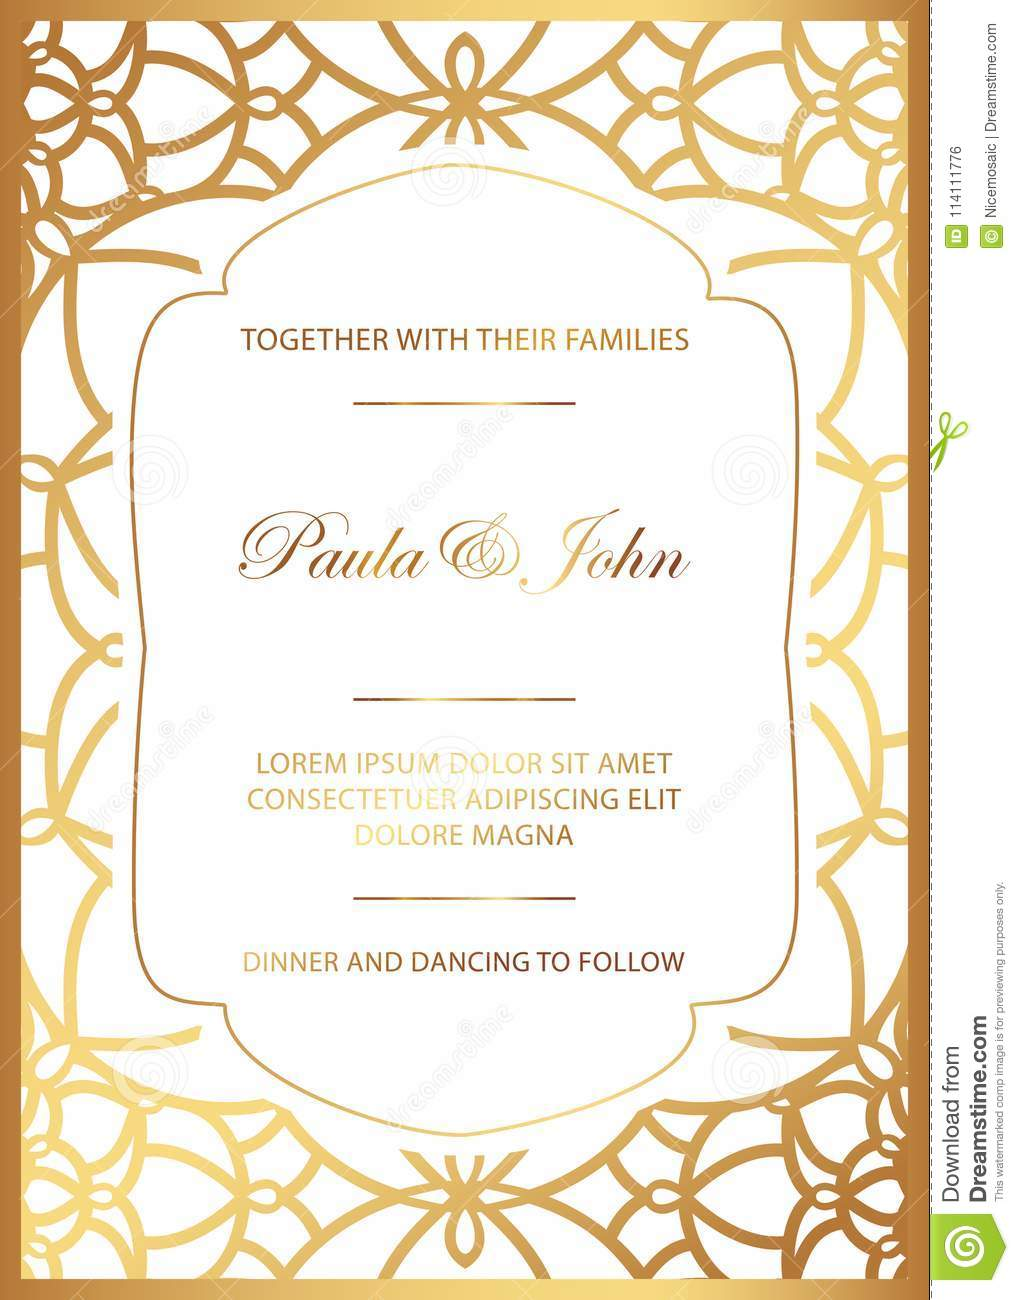 Stylish Gold And White Wedding Card Royal Vintage Wedding Invitation Template Save The Date Card Trendy Design With Geometric Stock Vector Illustration Of Celebrate Deco 114111776